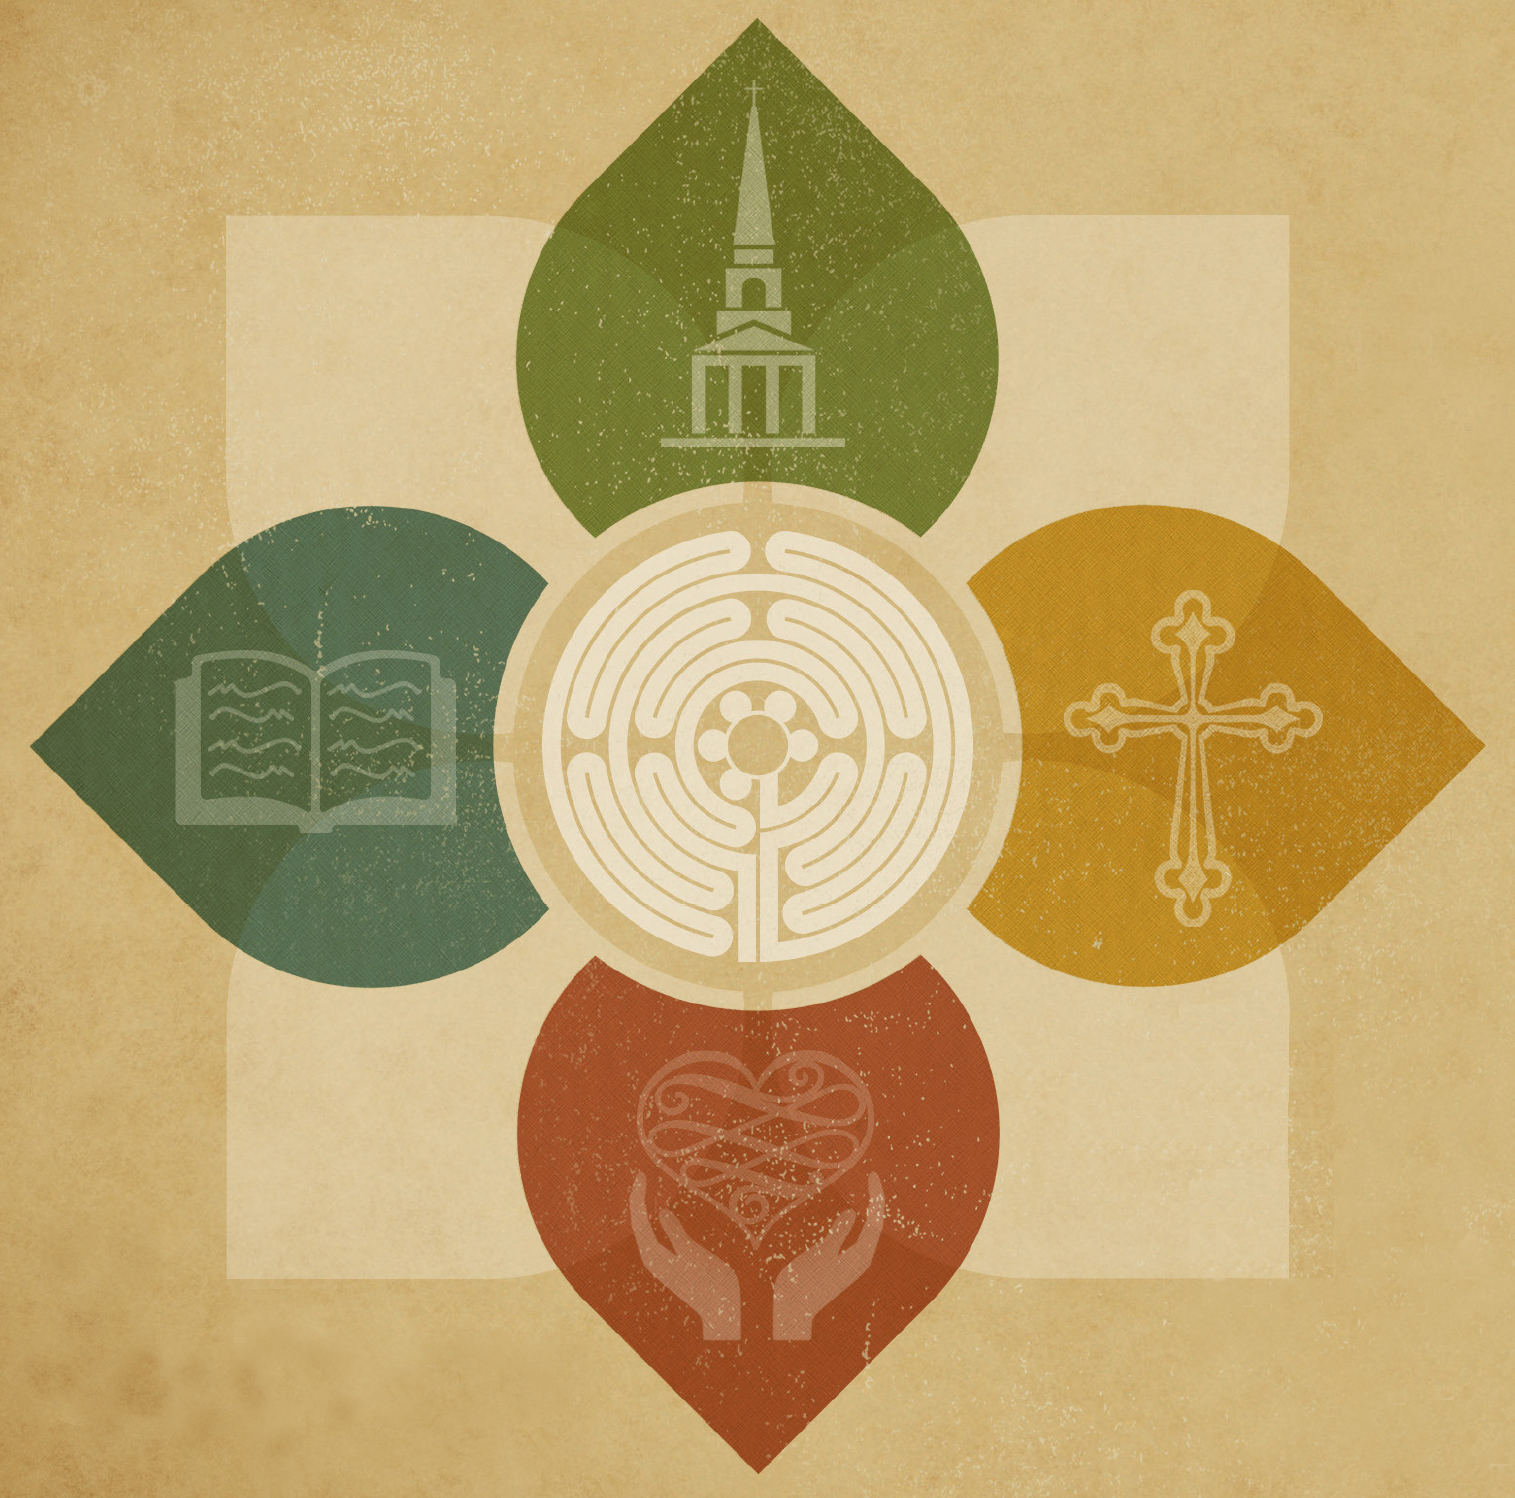 Pricing and Registration | Perkins School of Theology - SMU